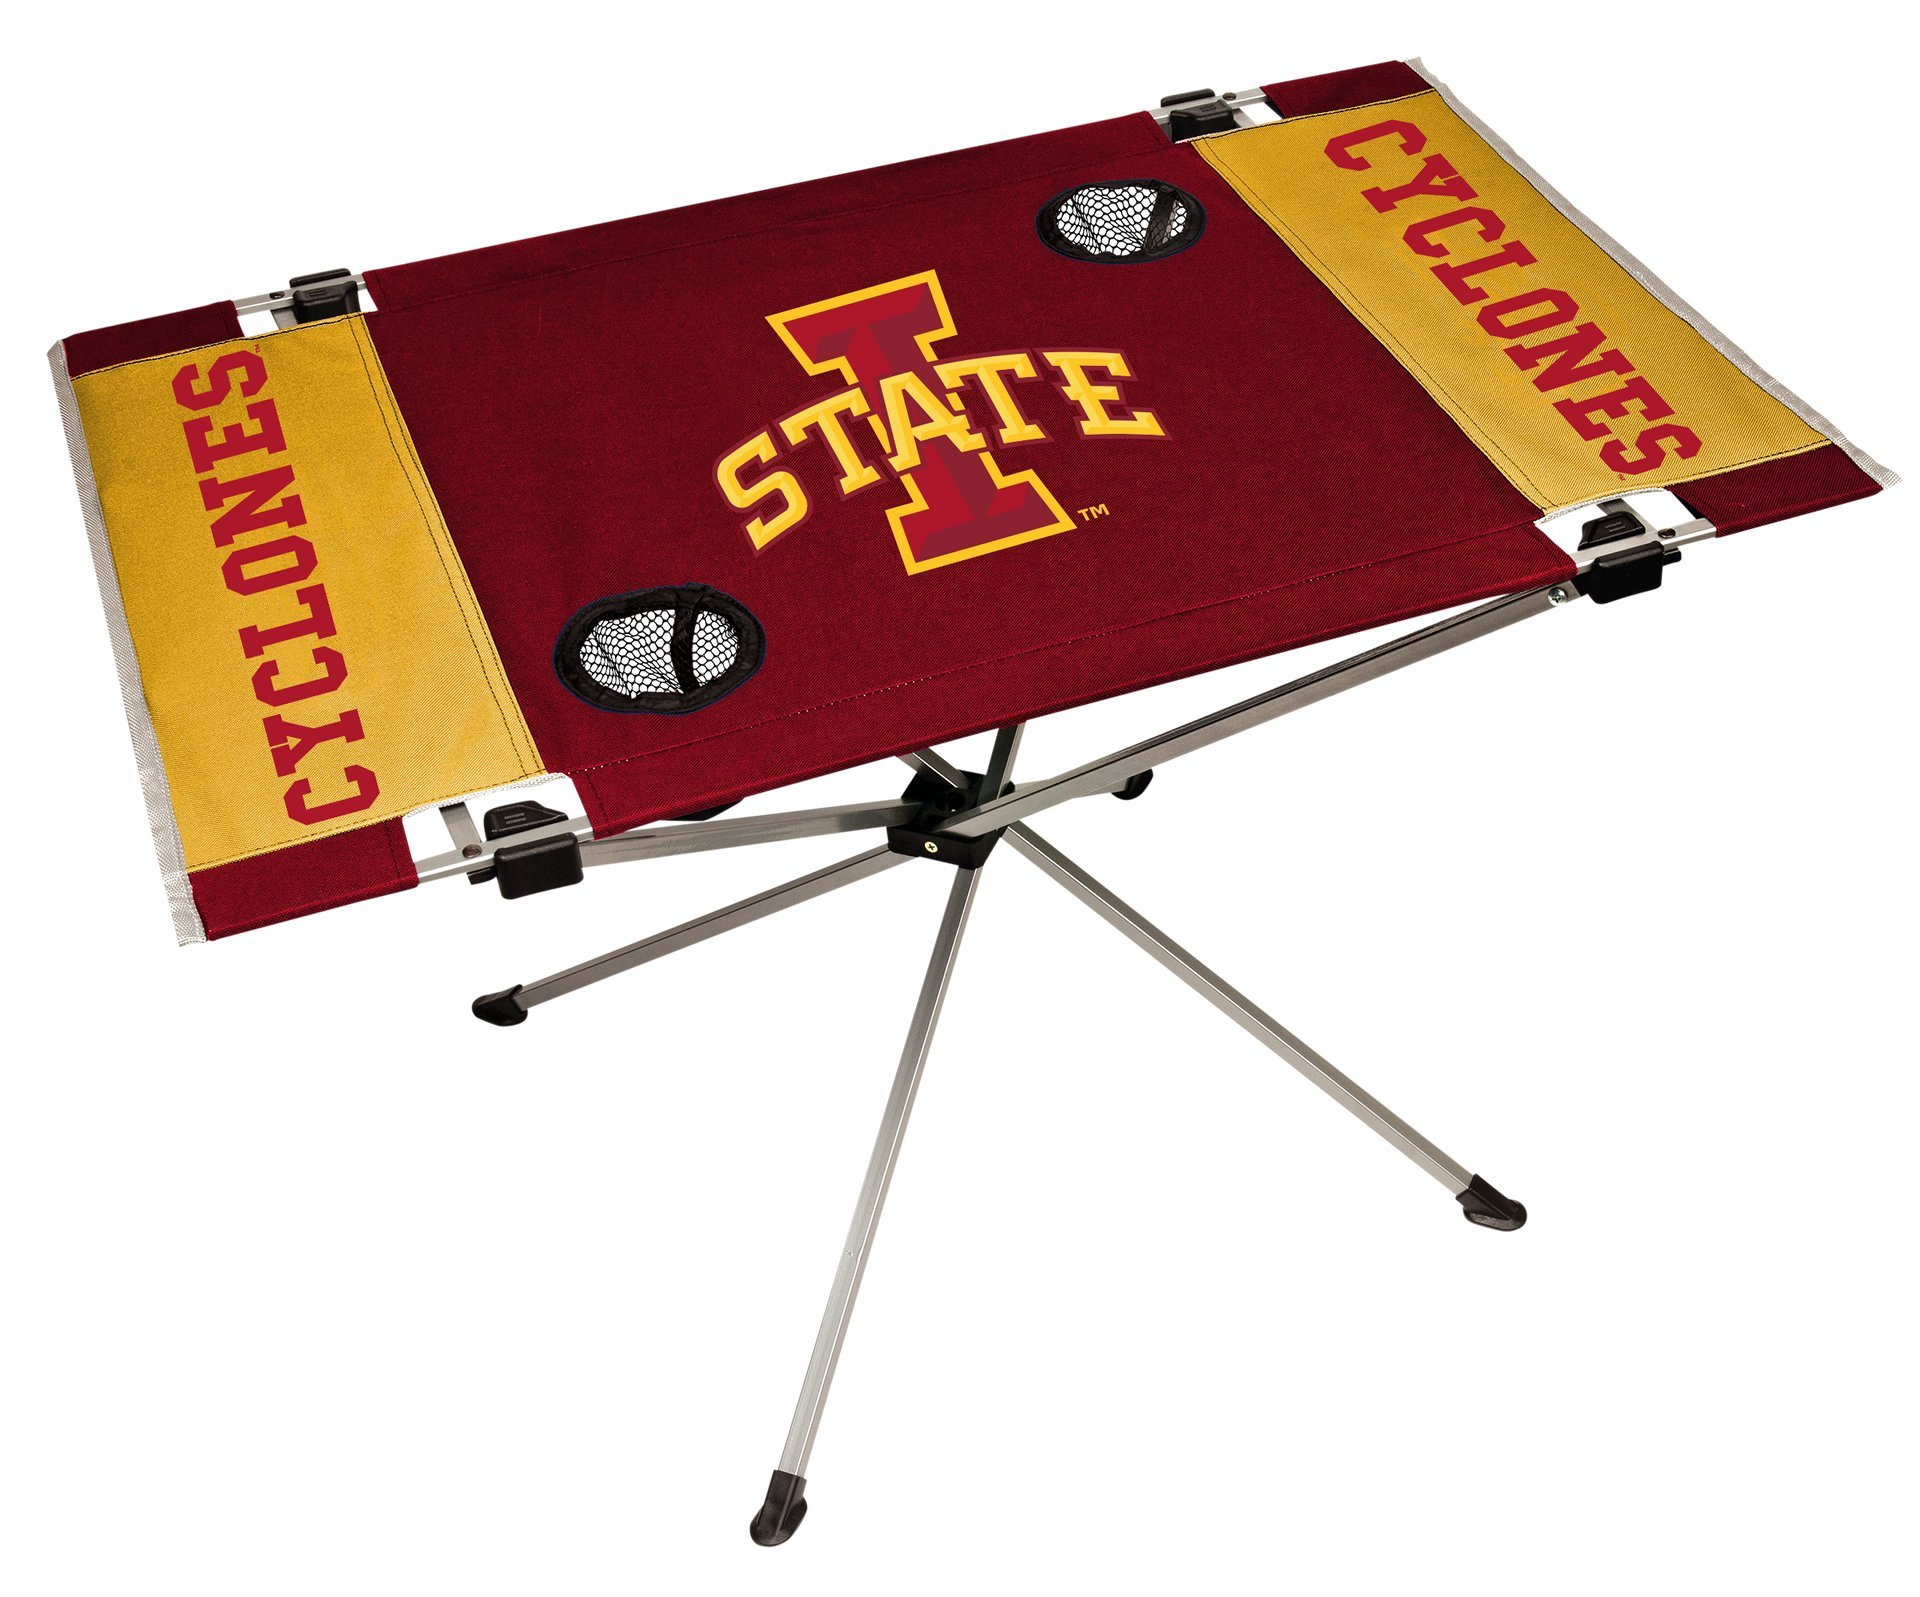 Rawlings NCAA Iowa State Cyclones NCAA Endzone Tailgate Table, Red, 31.5'' Large x 20.7'' W x 19'' H by Rawlings